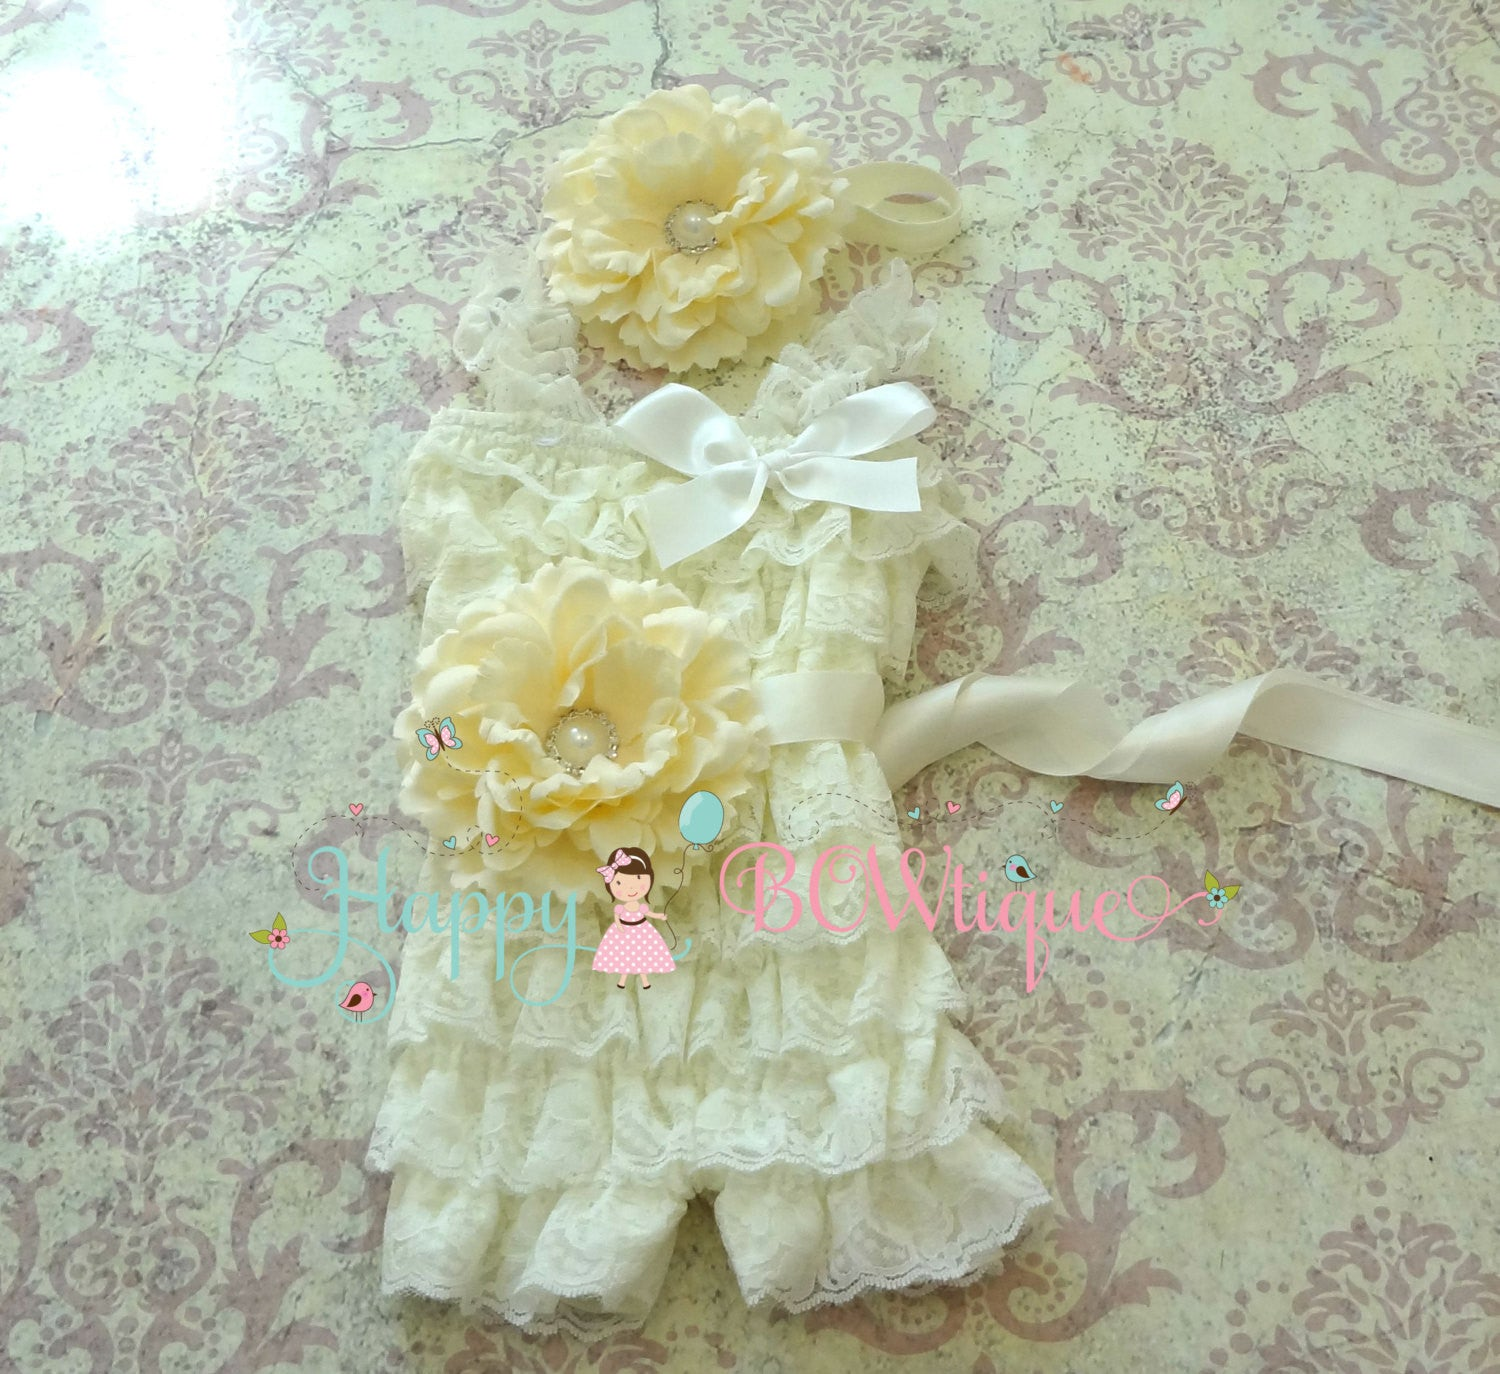 Ivory Flower Lace Romper set - Happy BOWtique - children's clothing, Baby Girl clothing